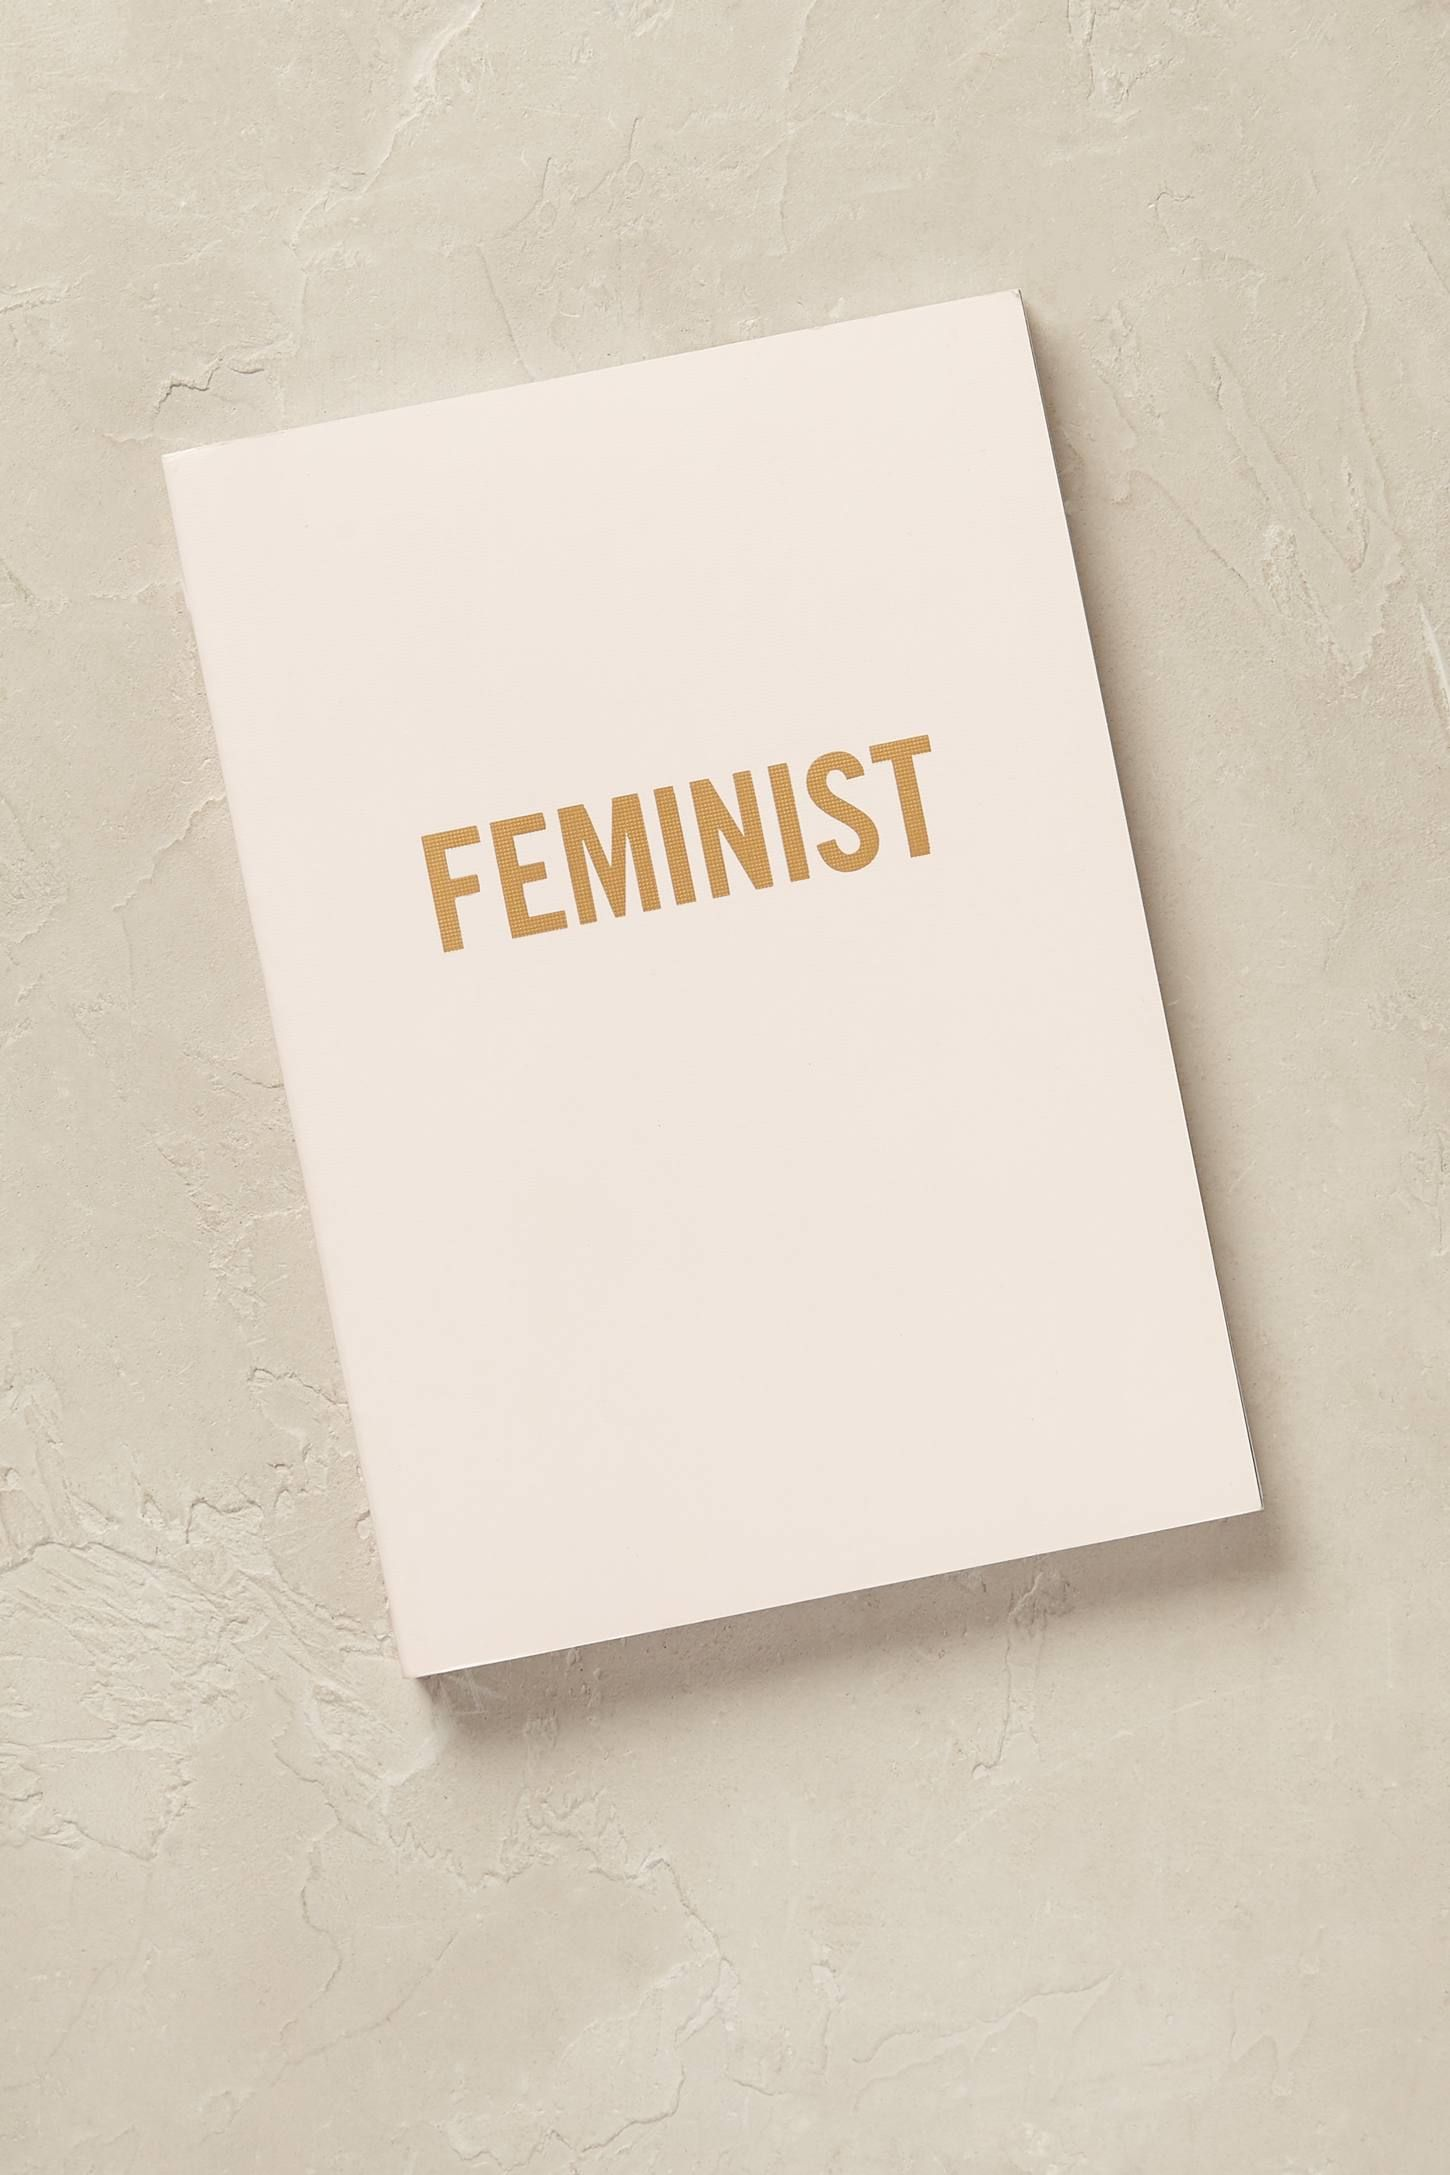 Slide View: 1: Feminist Journal